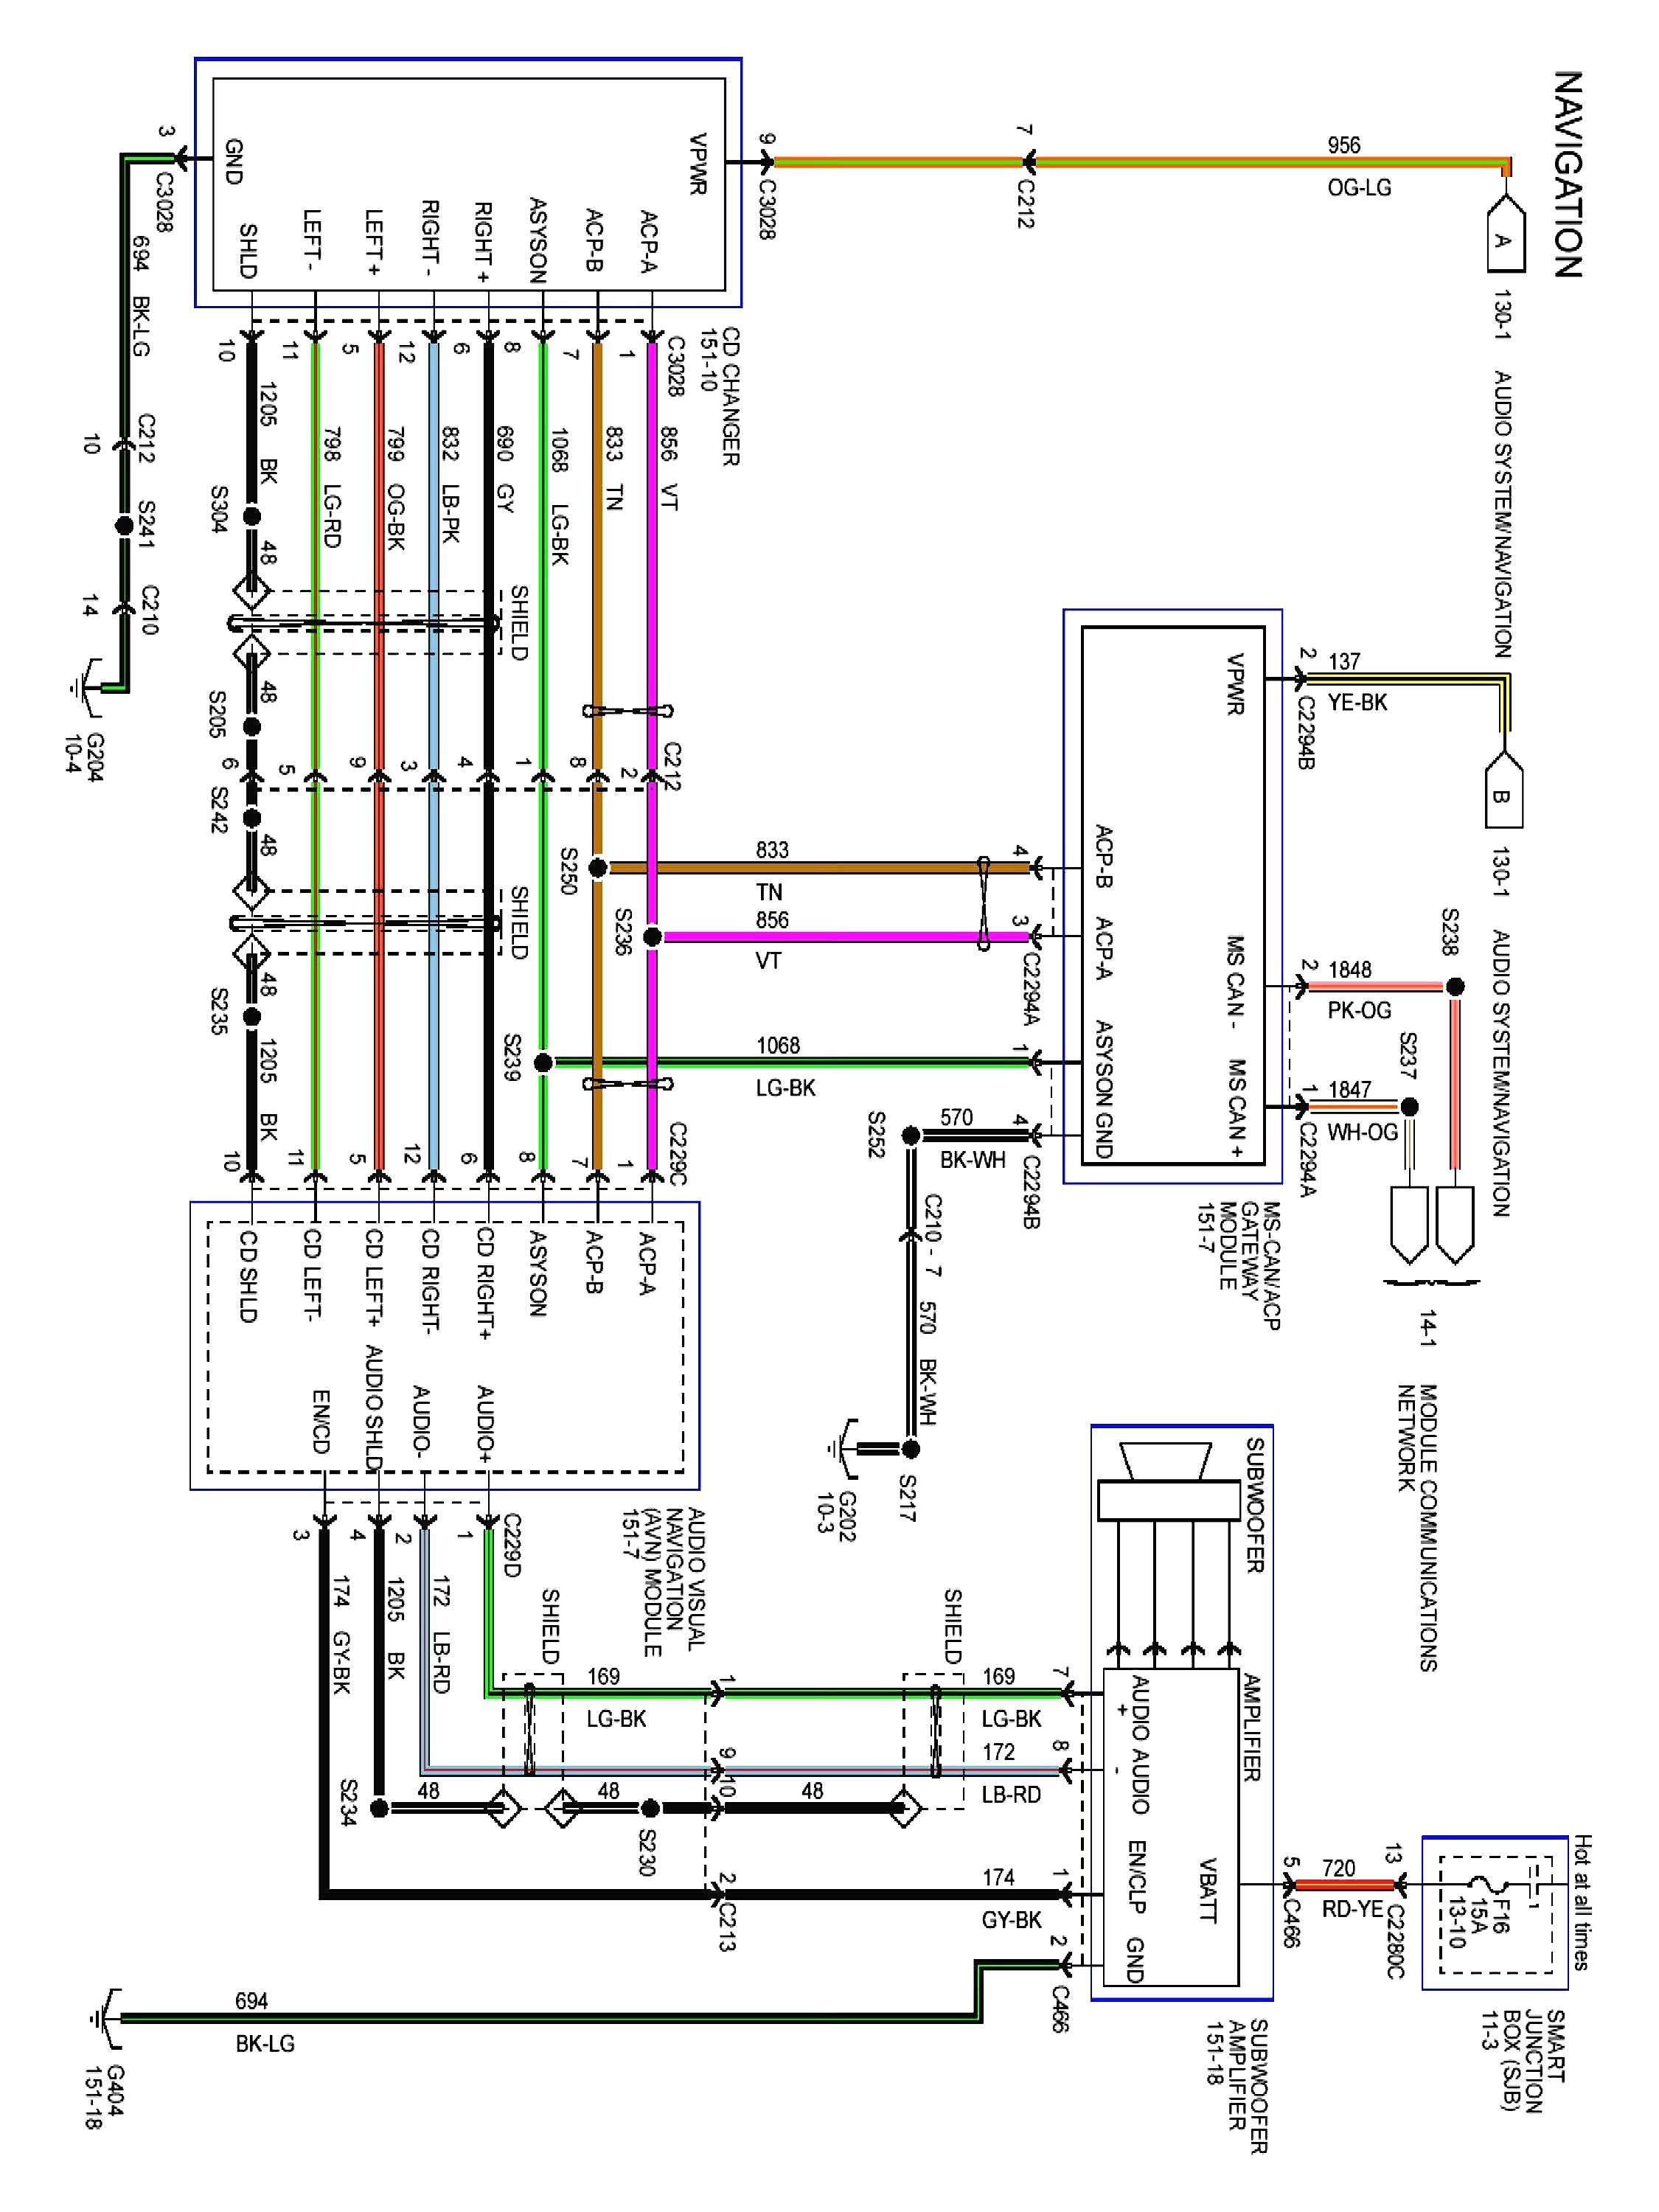 ford ranger wiring harness diagram wiring diagram used 2003 ford ranger radio wiring harness diagram 2003 ford ranger wiring harness